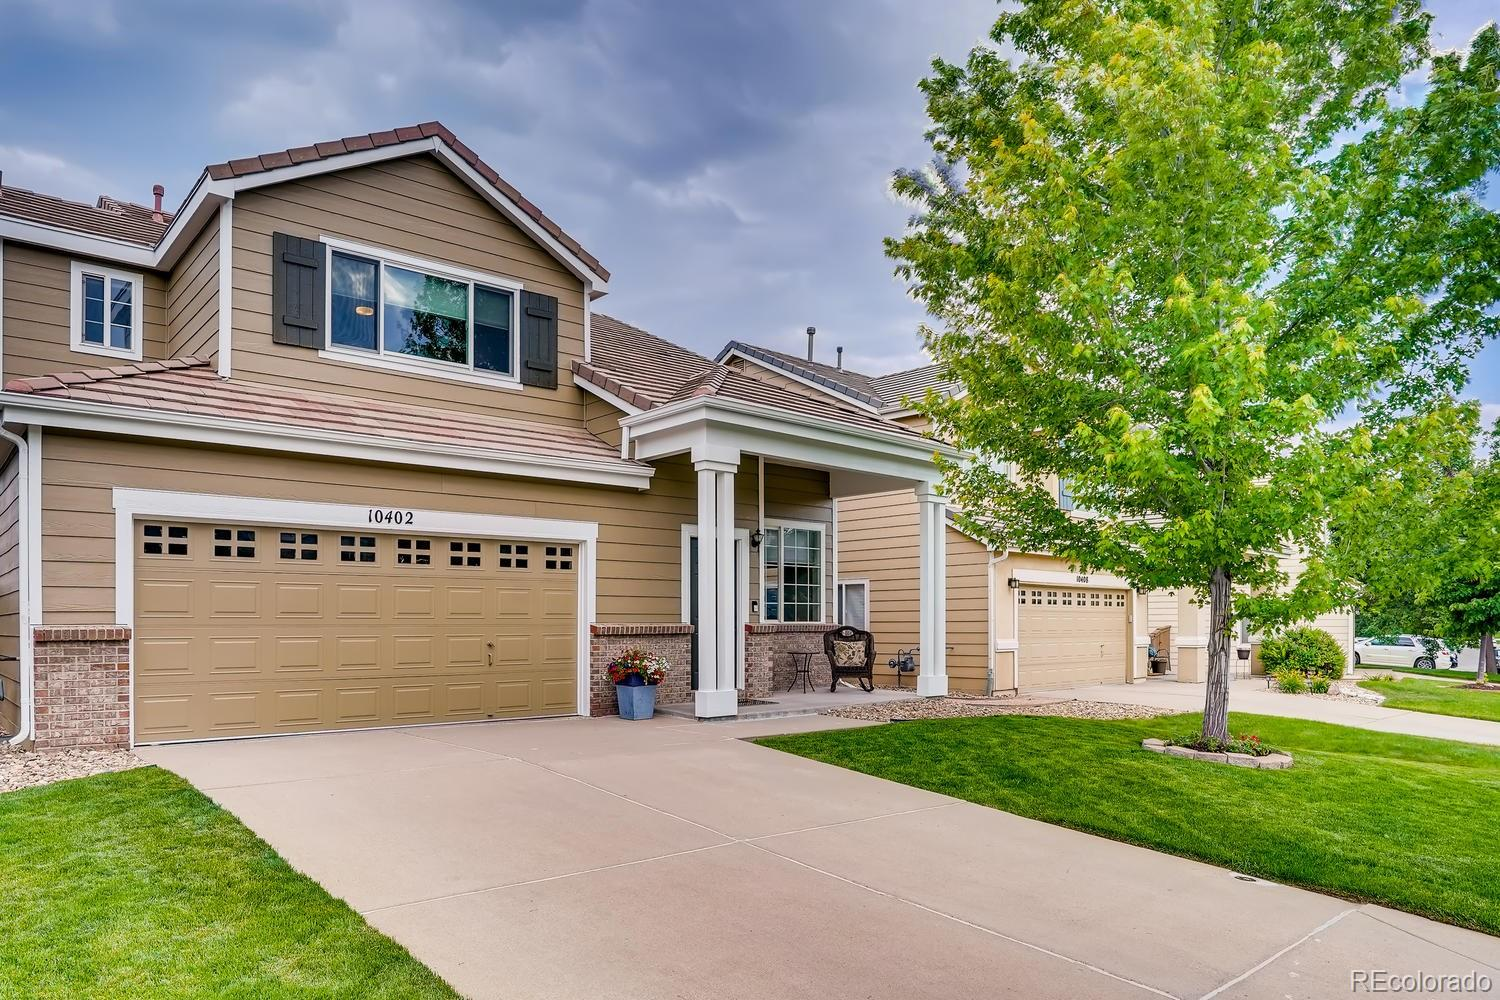 MLS# 5018466 - 2 - 10402 Tracewood Drive, Highlands Ranch, CO 80130